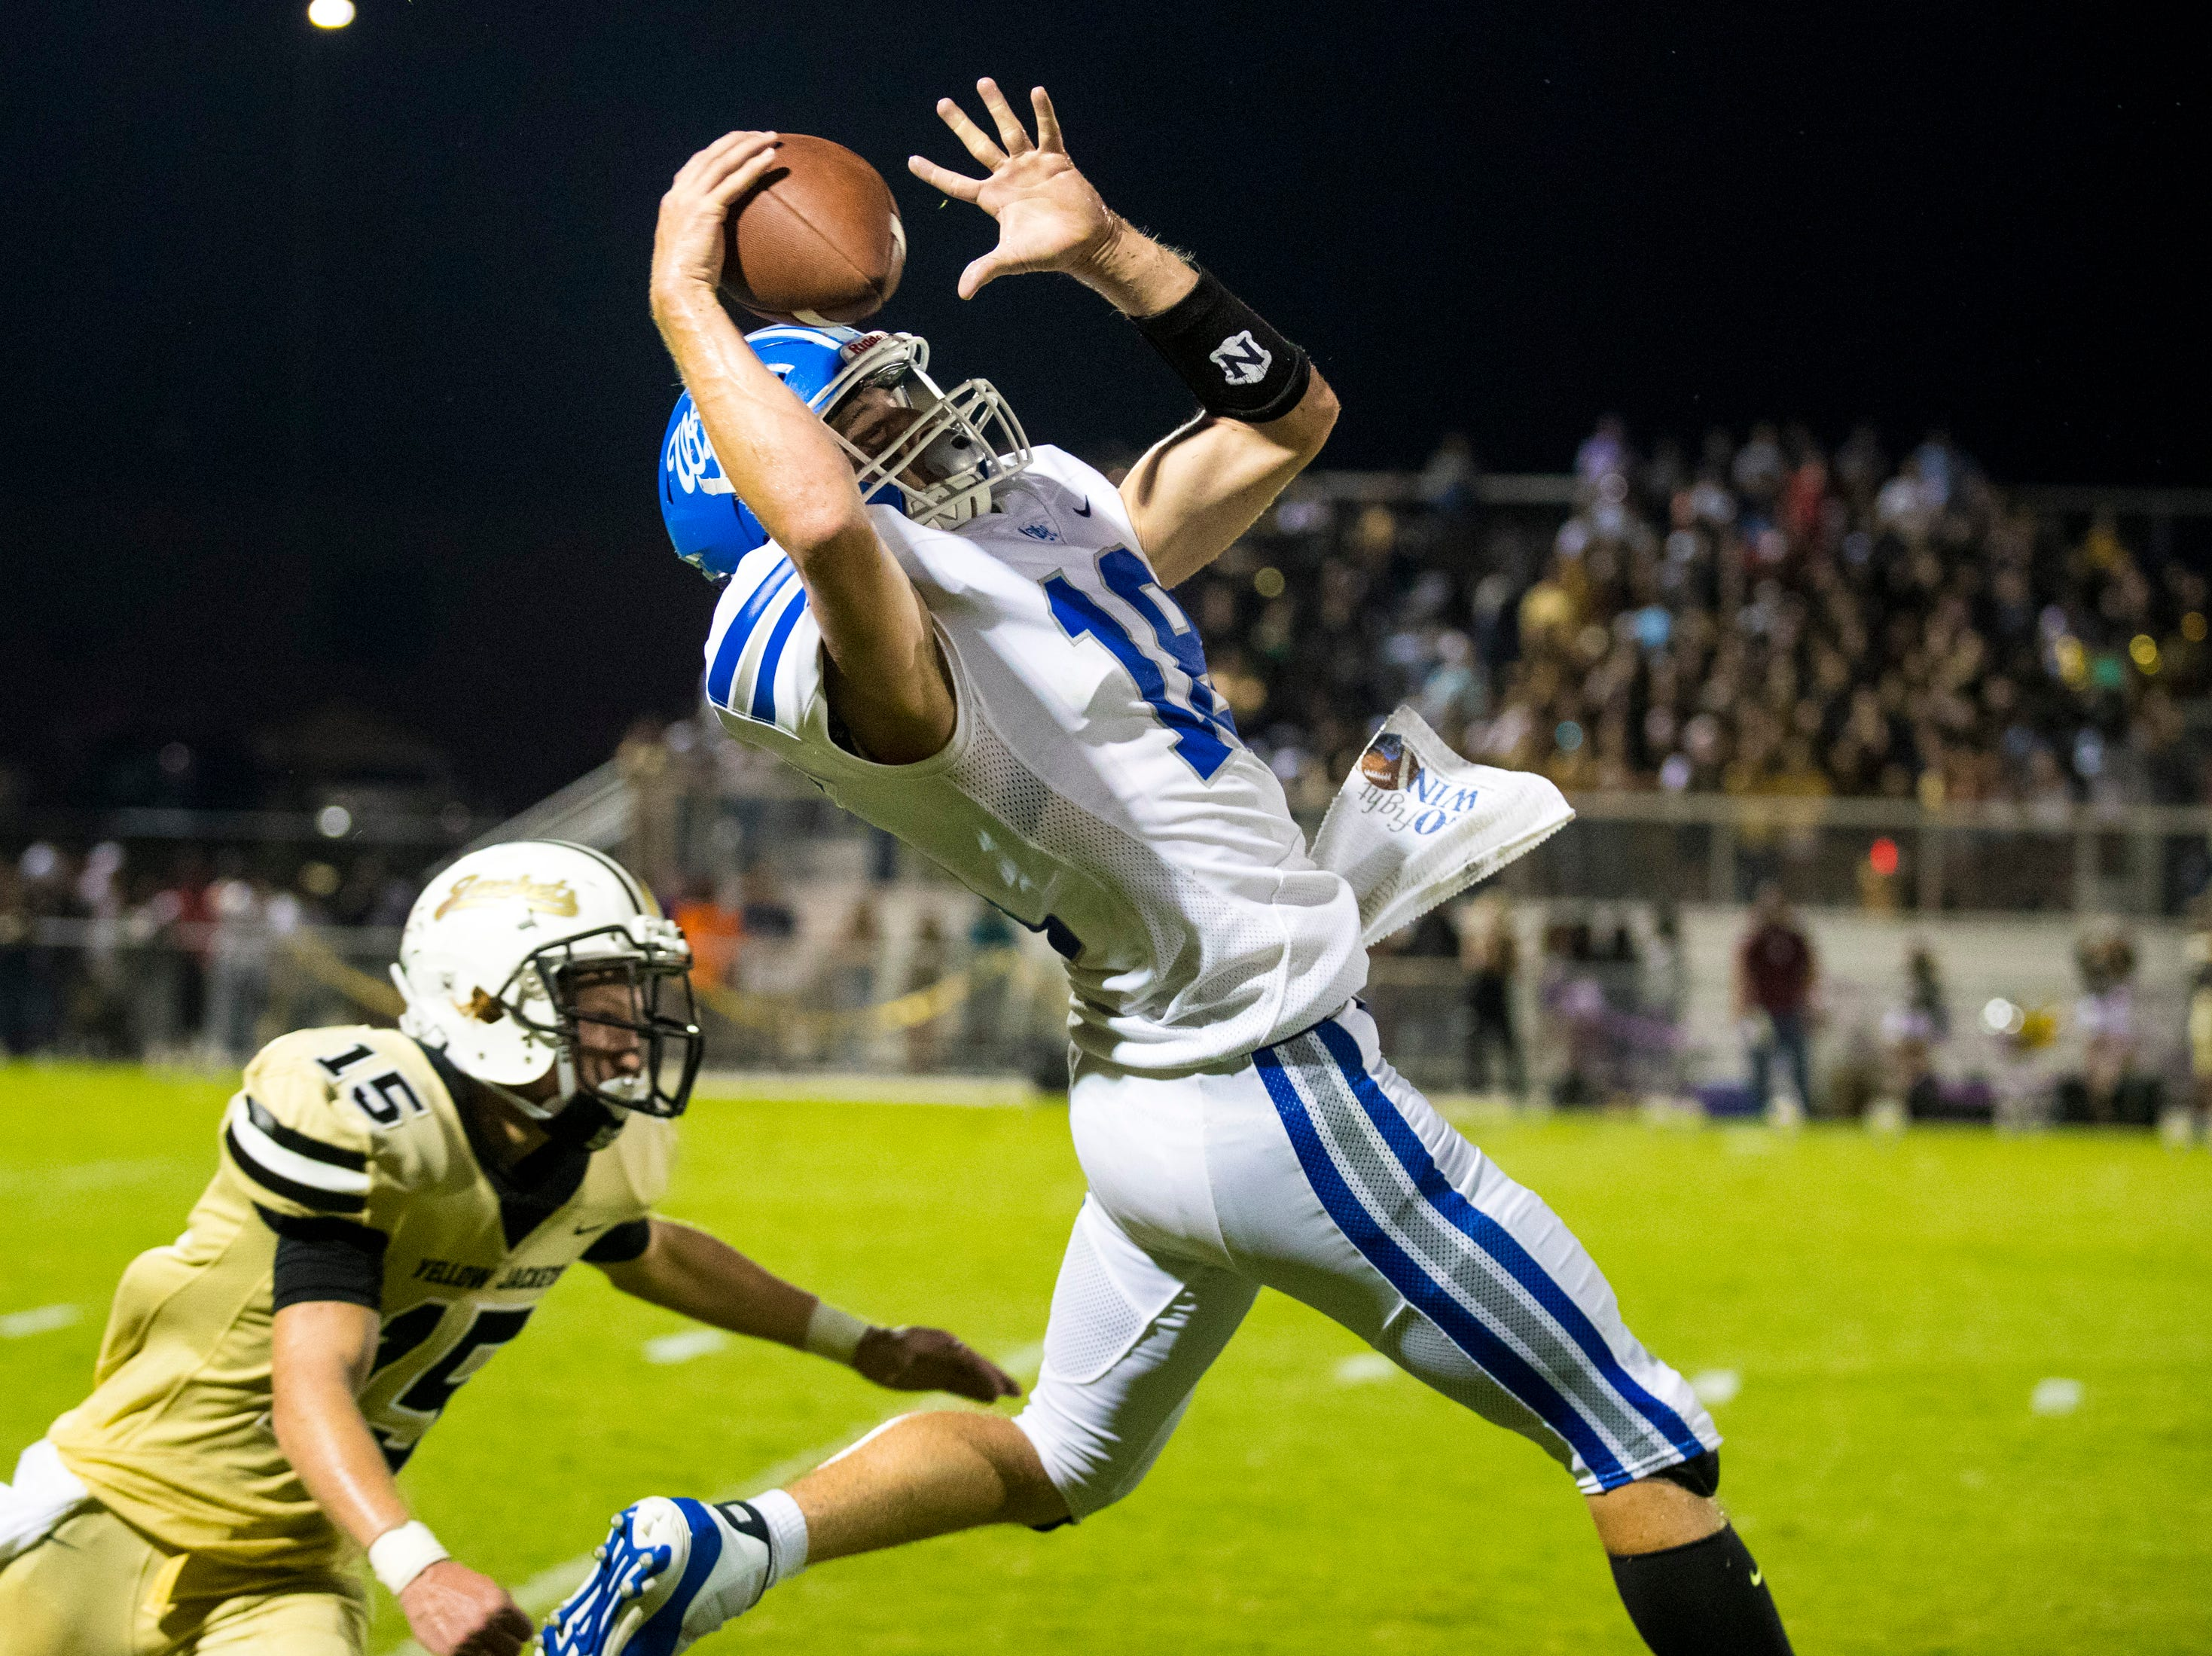 White House's Cameron Casanova (18) catches a long pass one handed during Springfield's game against White House at Springfield High School in Springfield on Friday, Sept. 14, 2018.